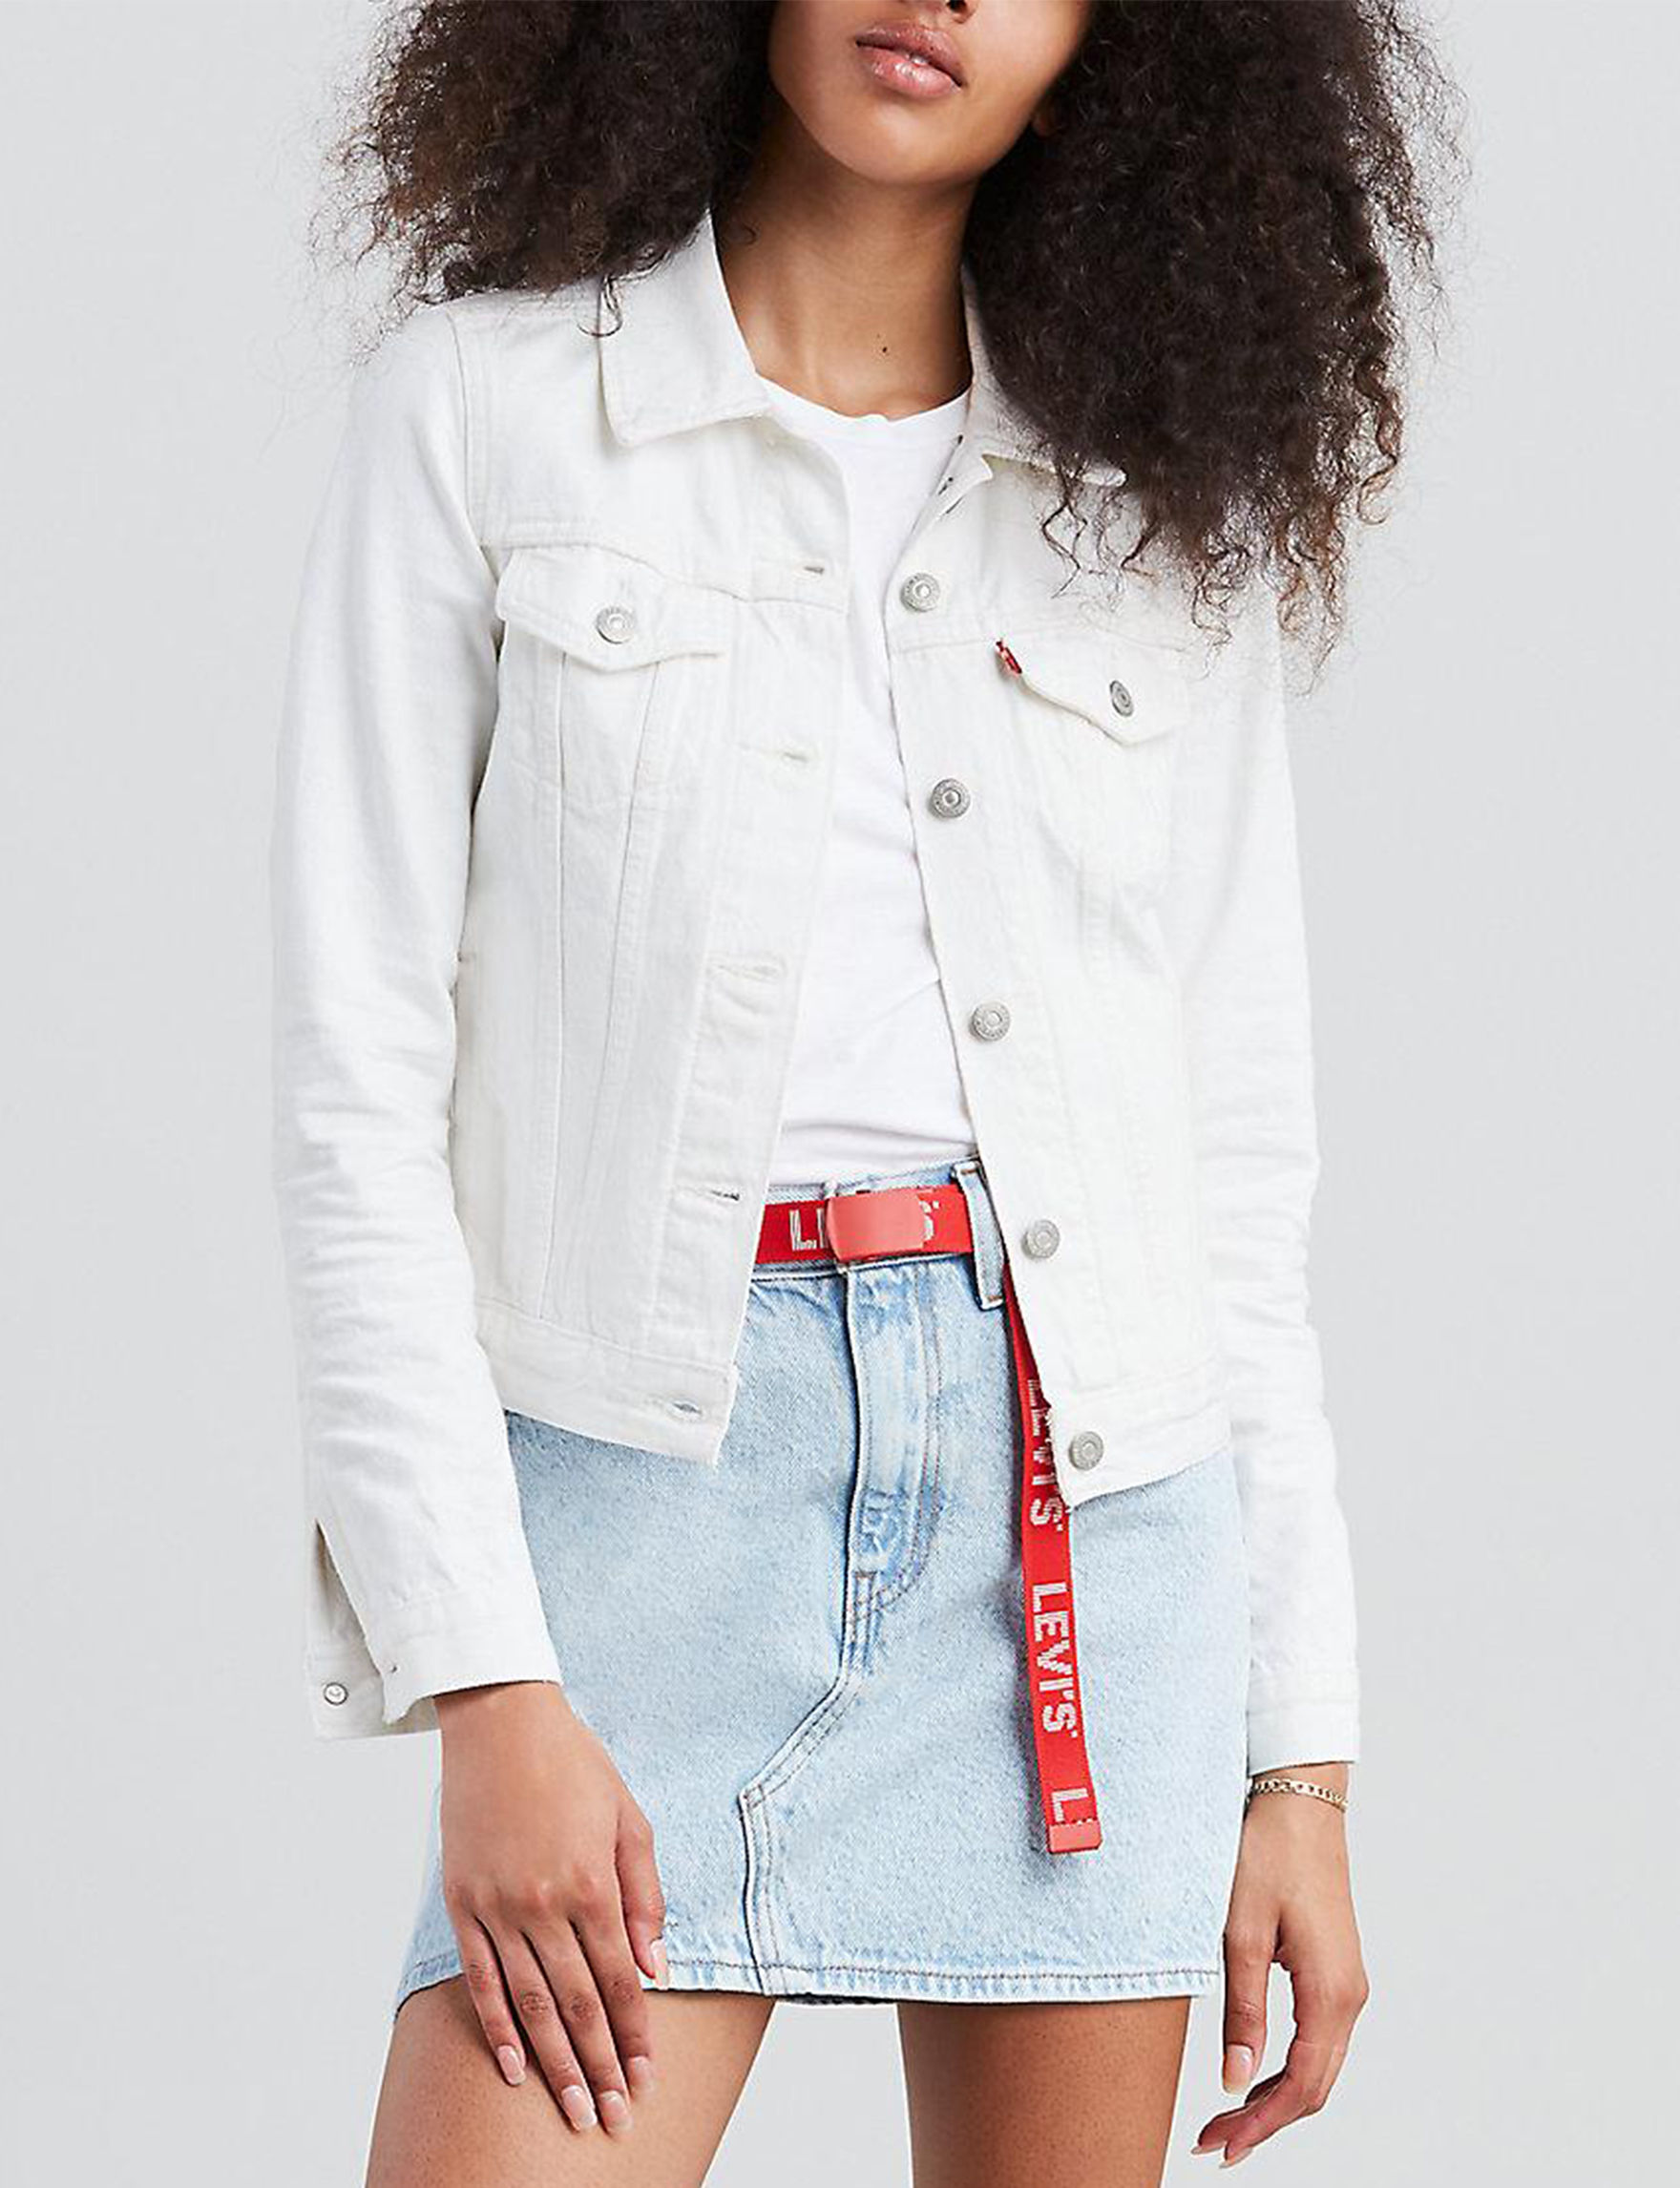 Levi's White Denim Jackets